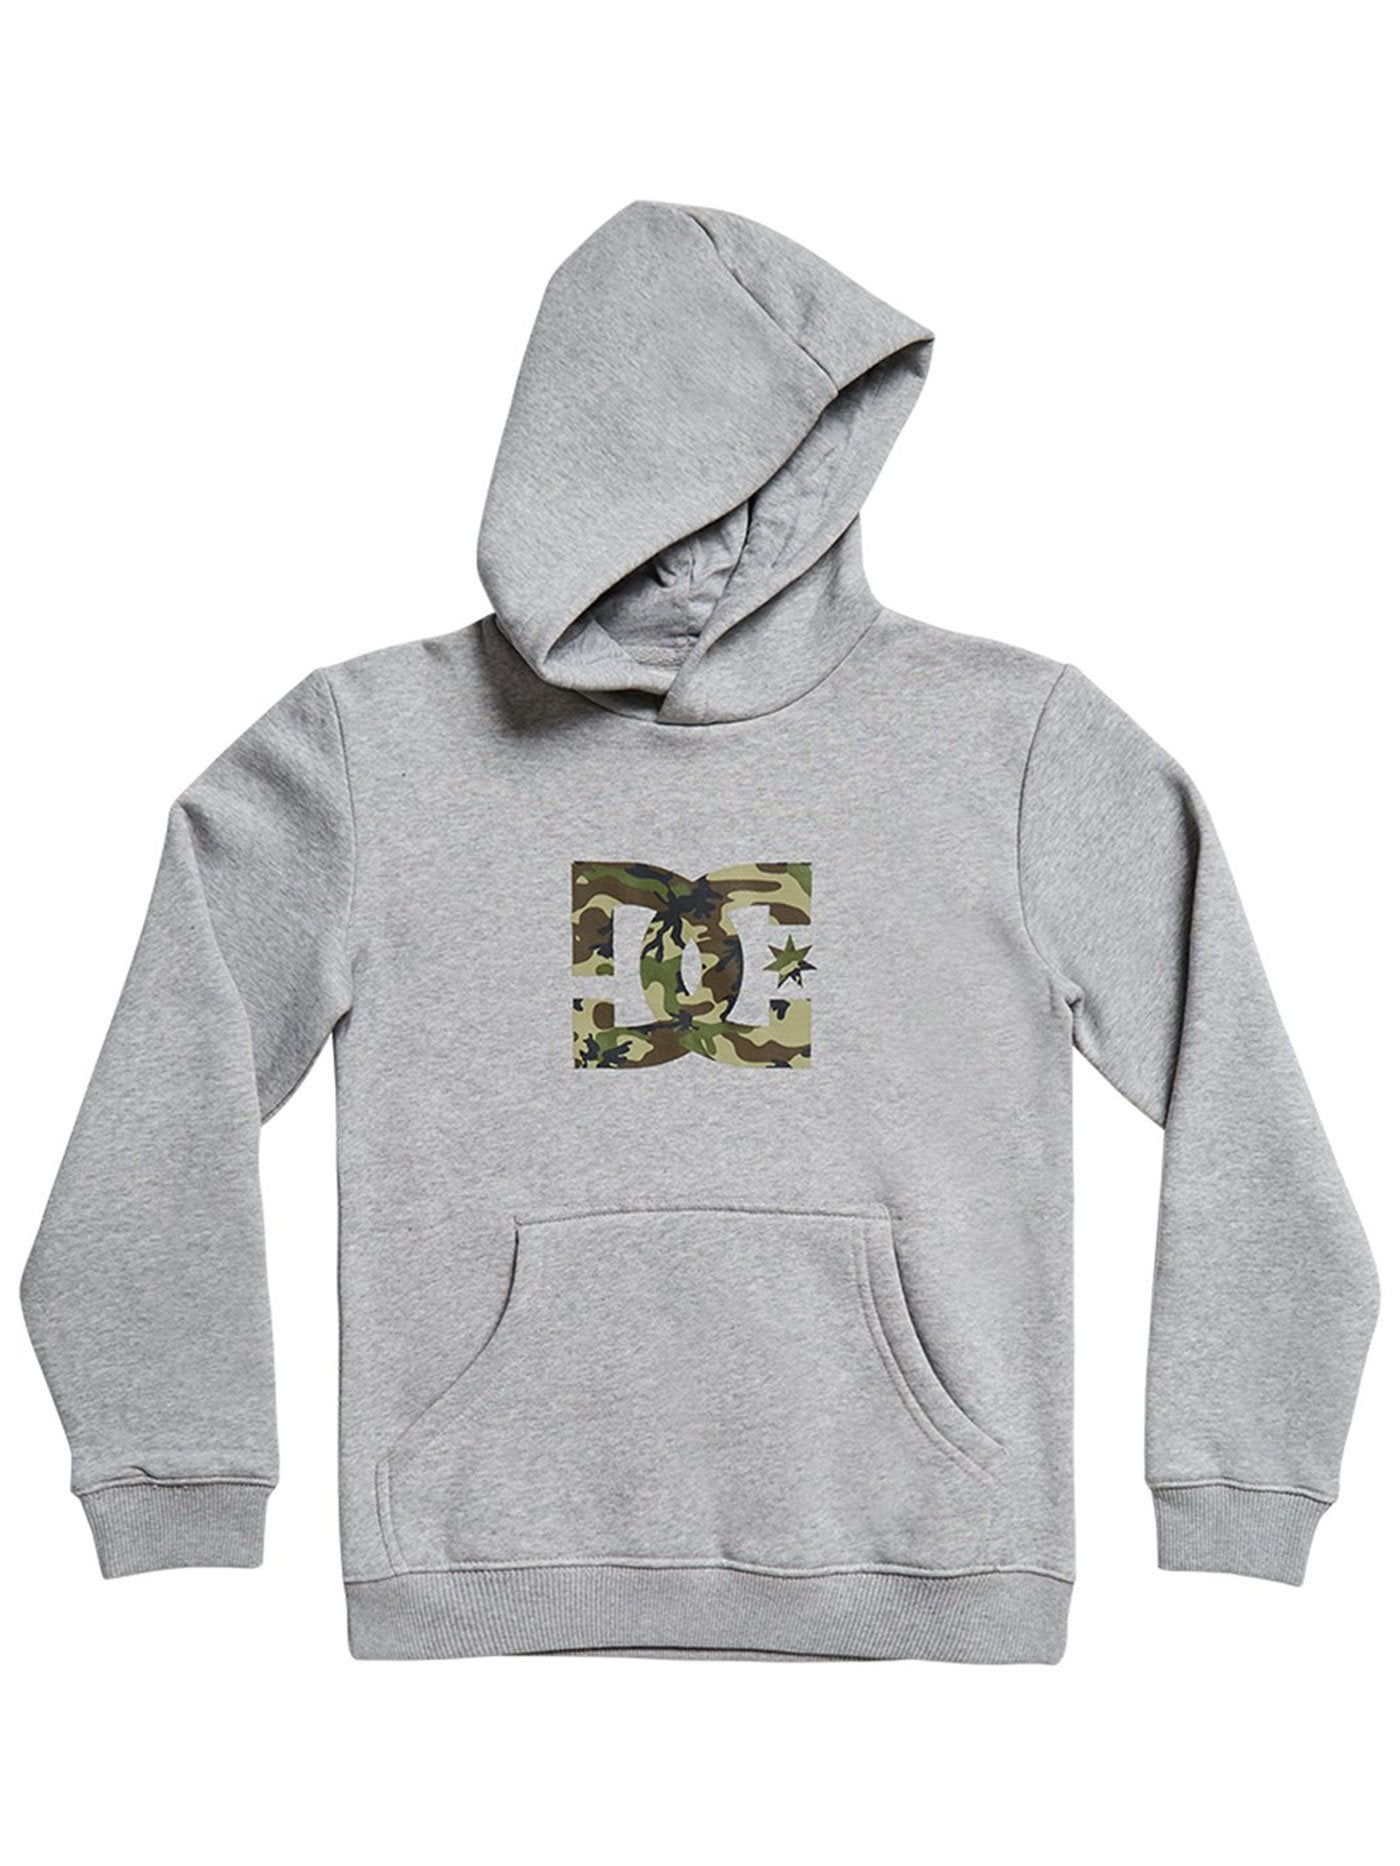 GREY HEATHER/CAMO (XSSC)